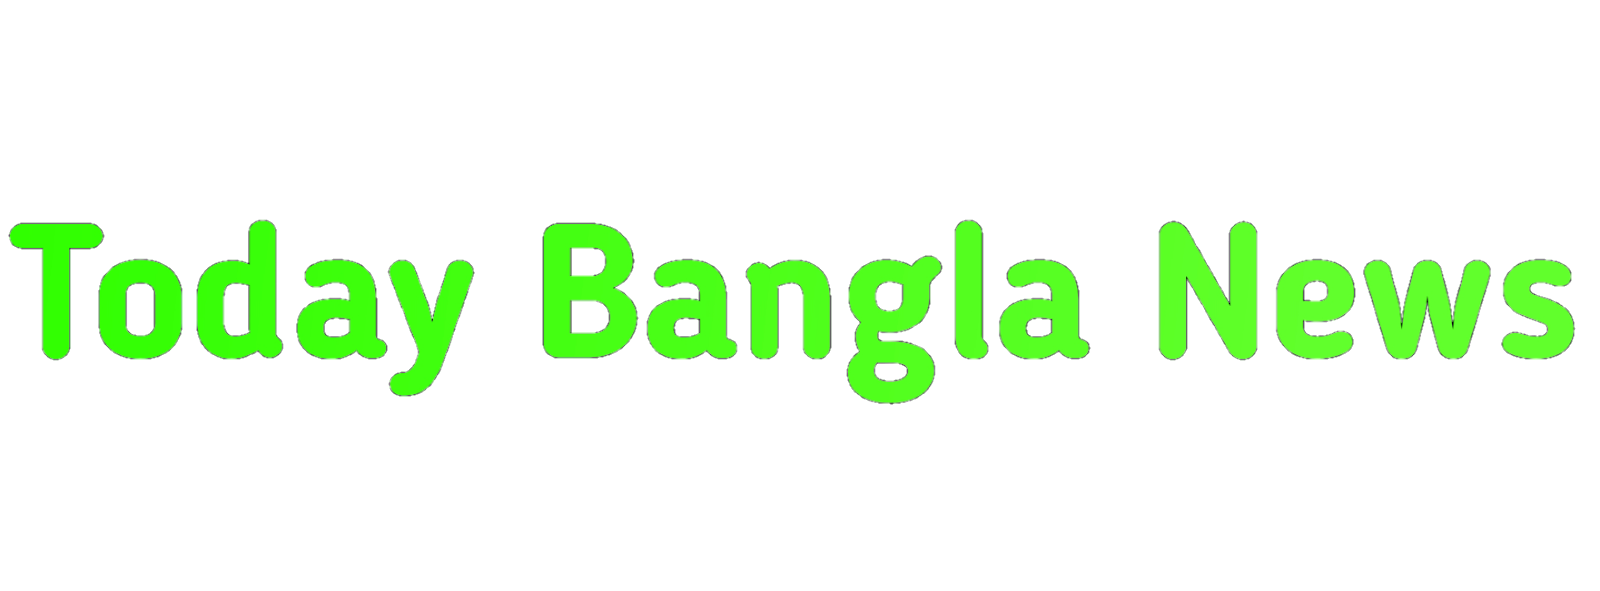 Latest Bengali News, India News, Bengali News Paper, Latest News India, News Today India